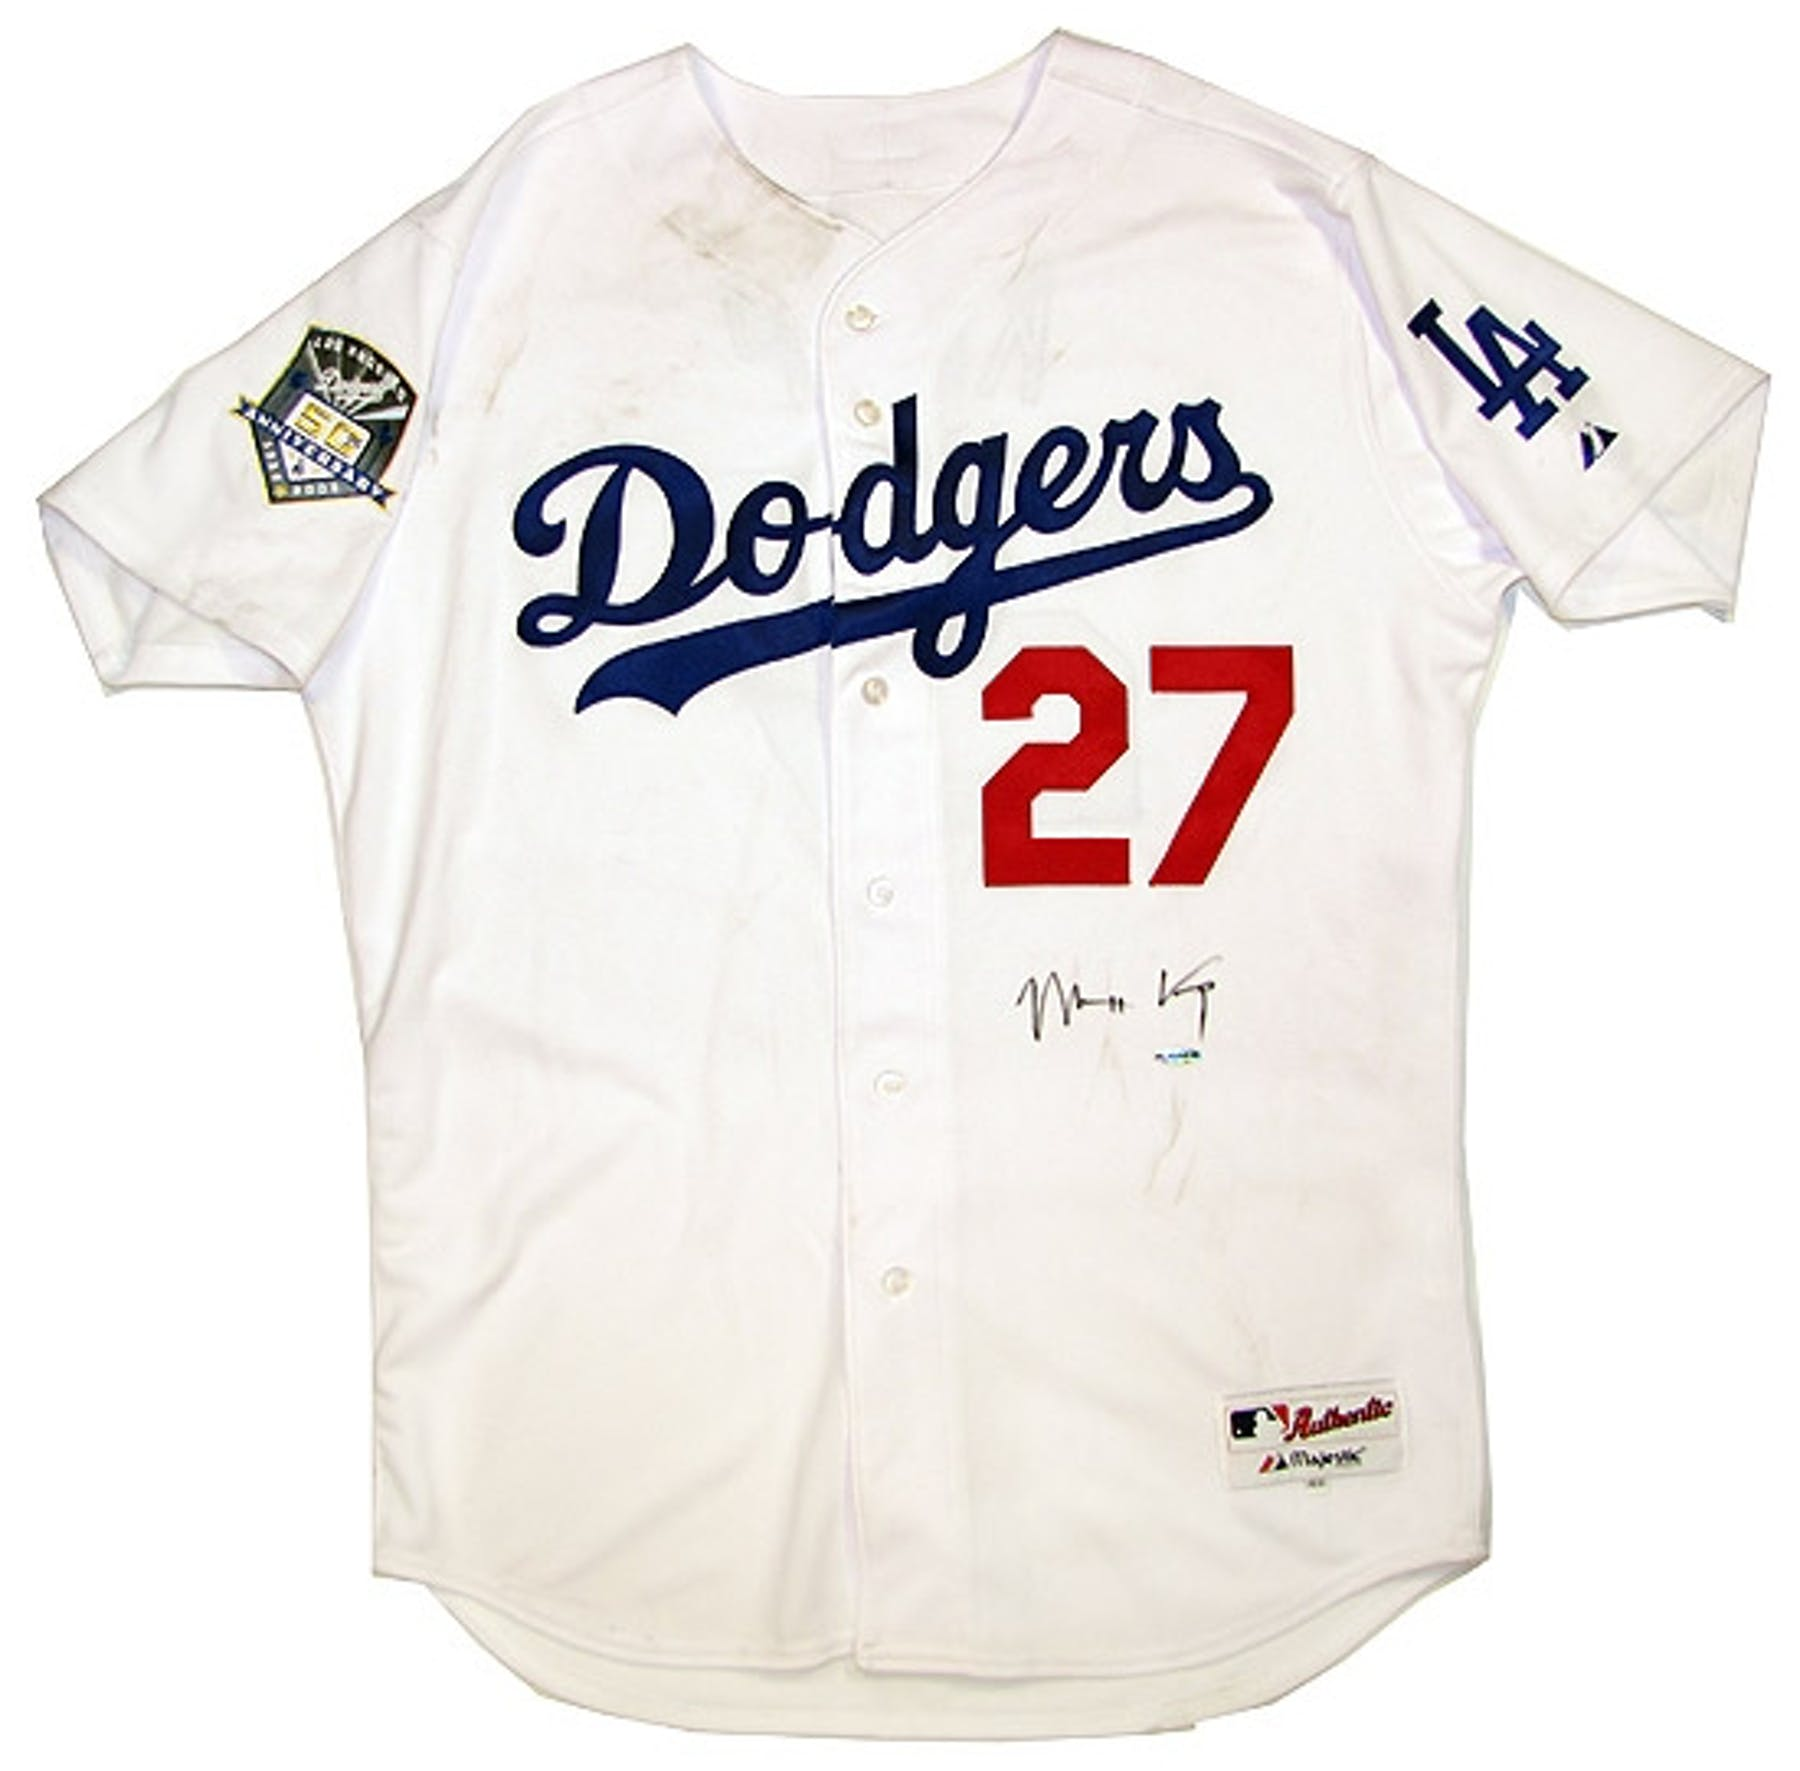 Matt Kemp Autographed Los Angeles Dodgers Slightly Stained White Jersey  (DAC  915eaf7c9a9